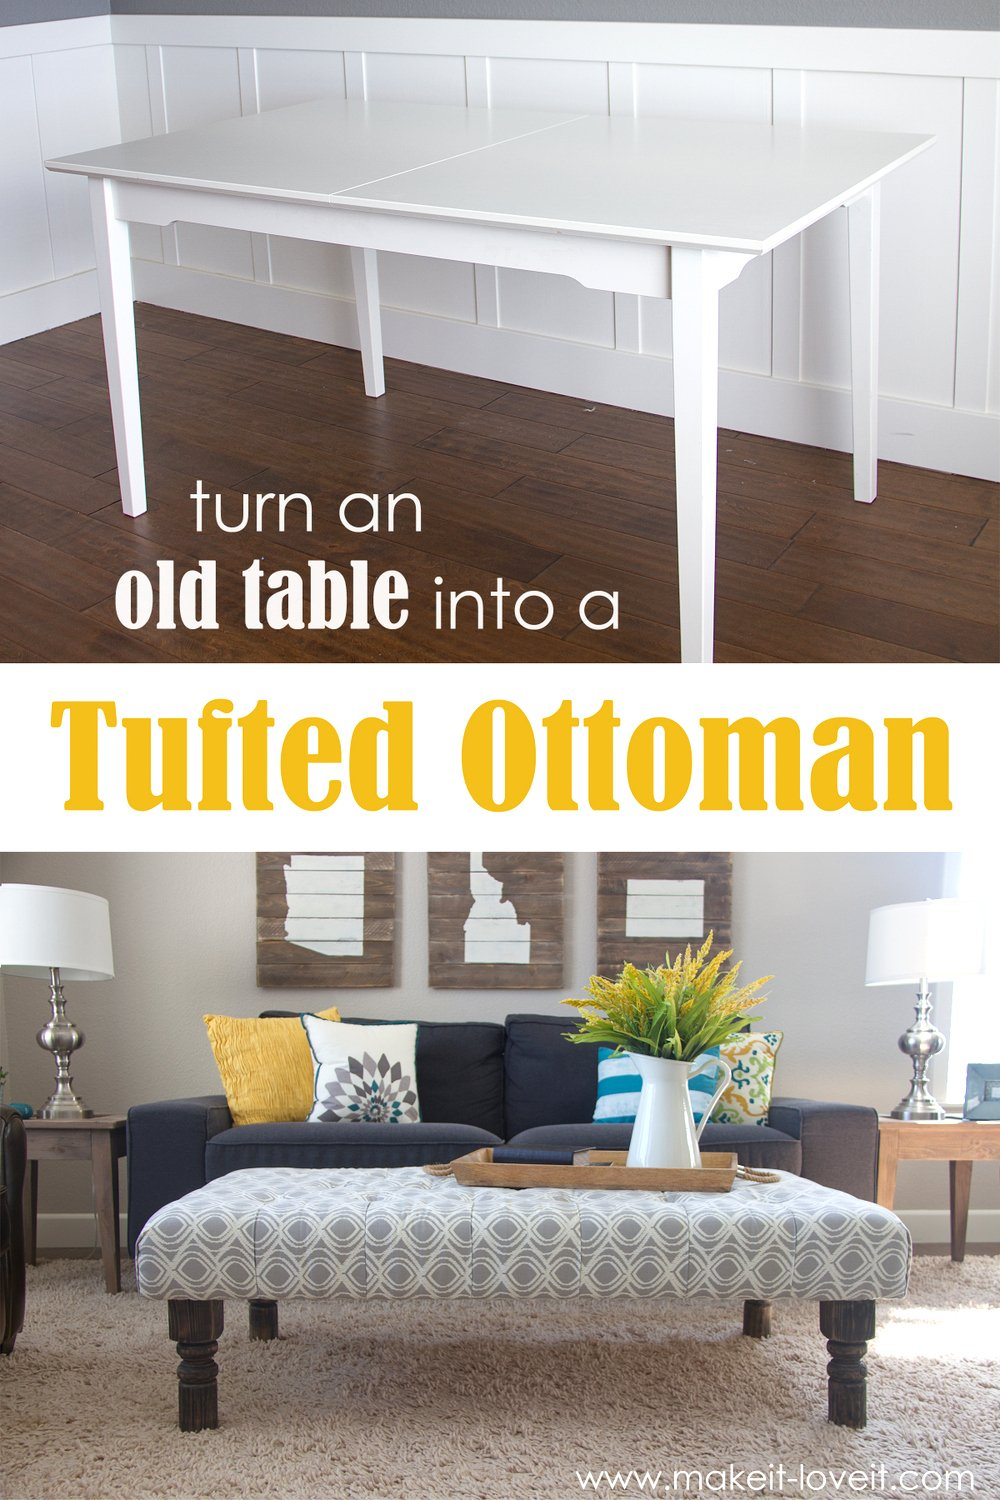 1turn-a-table-into-a-tufted-ottoman-1